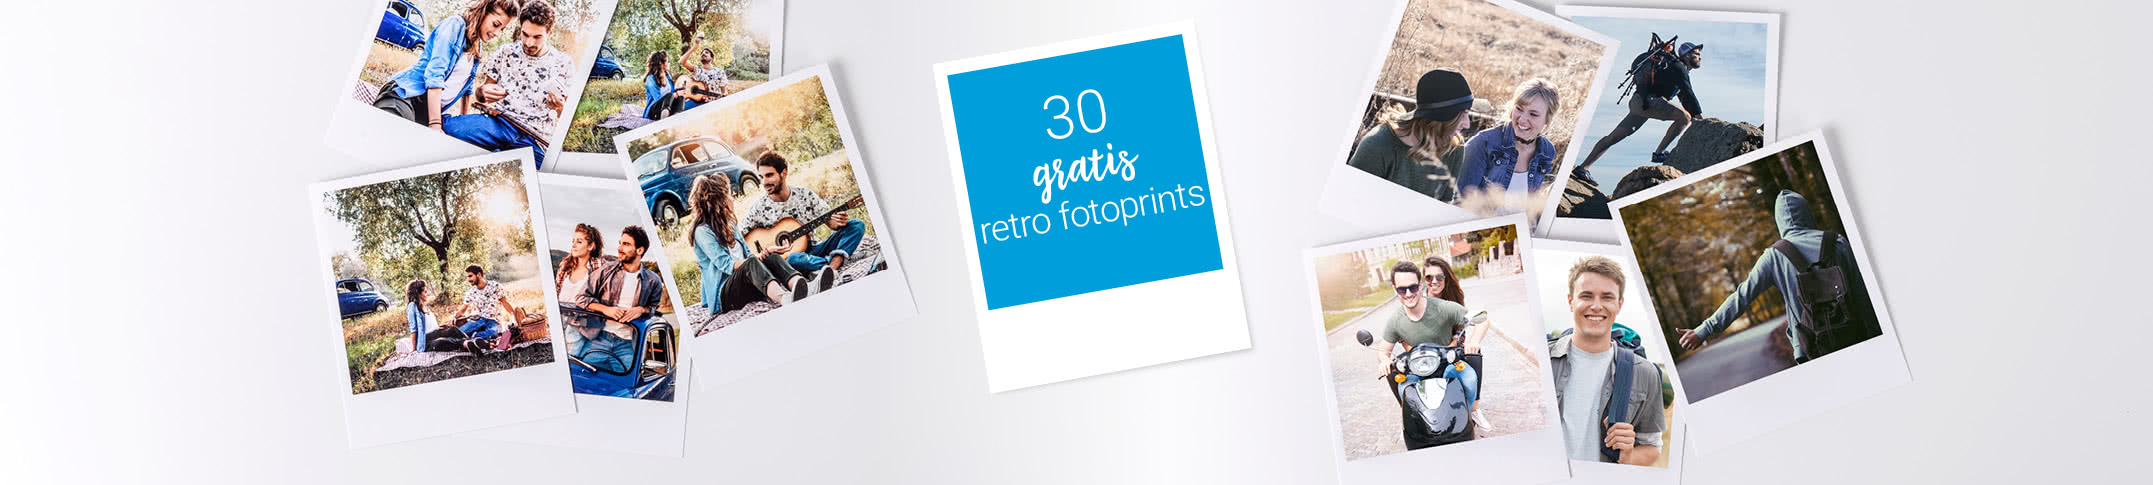 50 gratis fotoprints